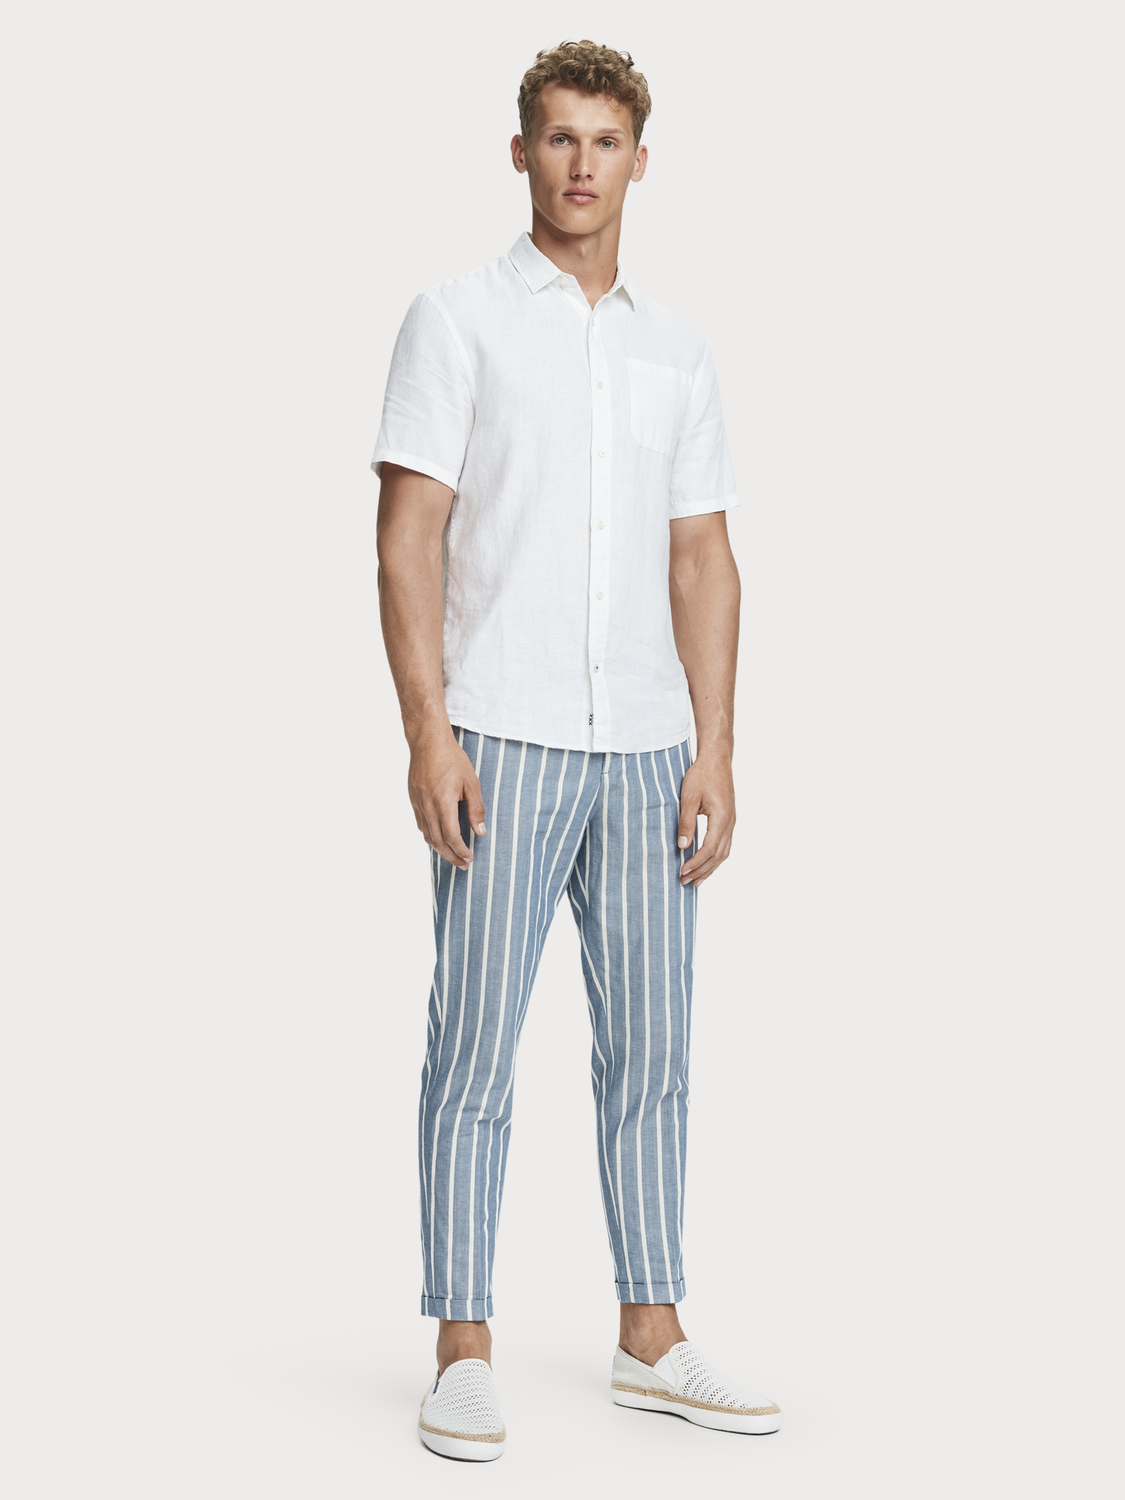 Men Fave - striped herringbone trousers | Regular tapered fit